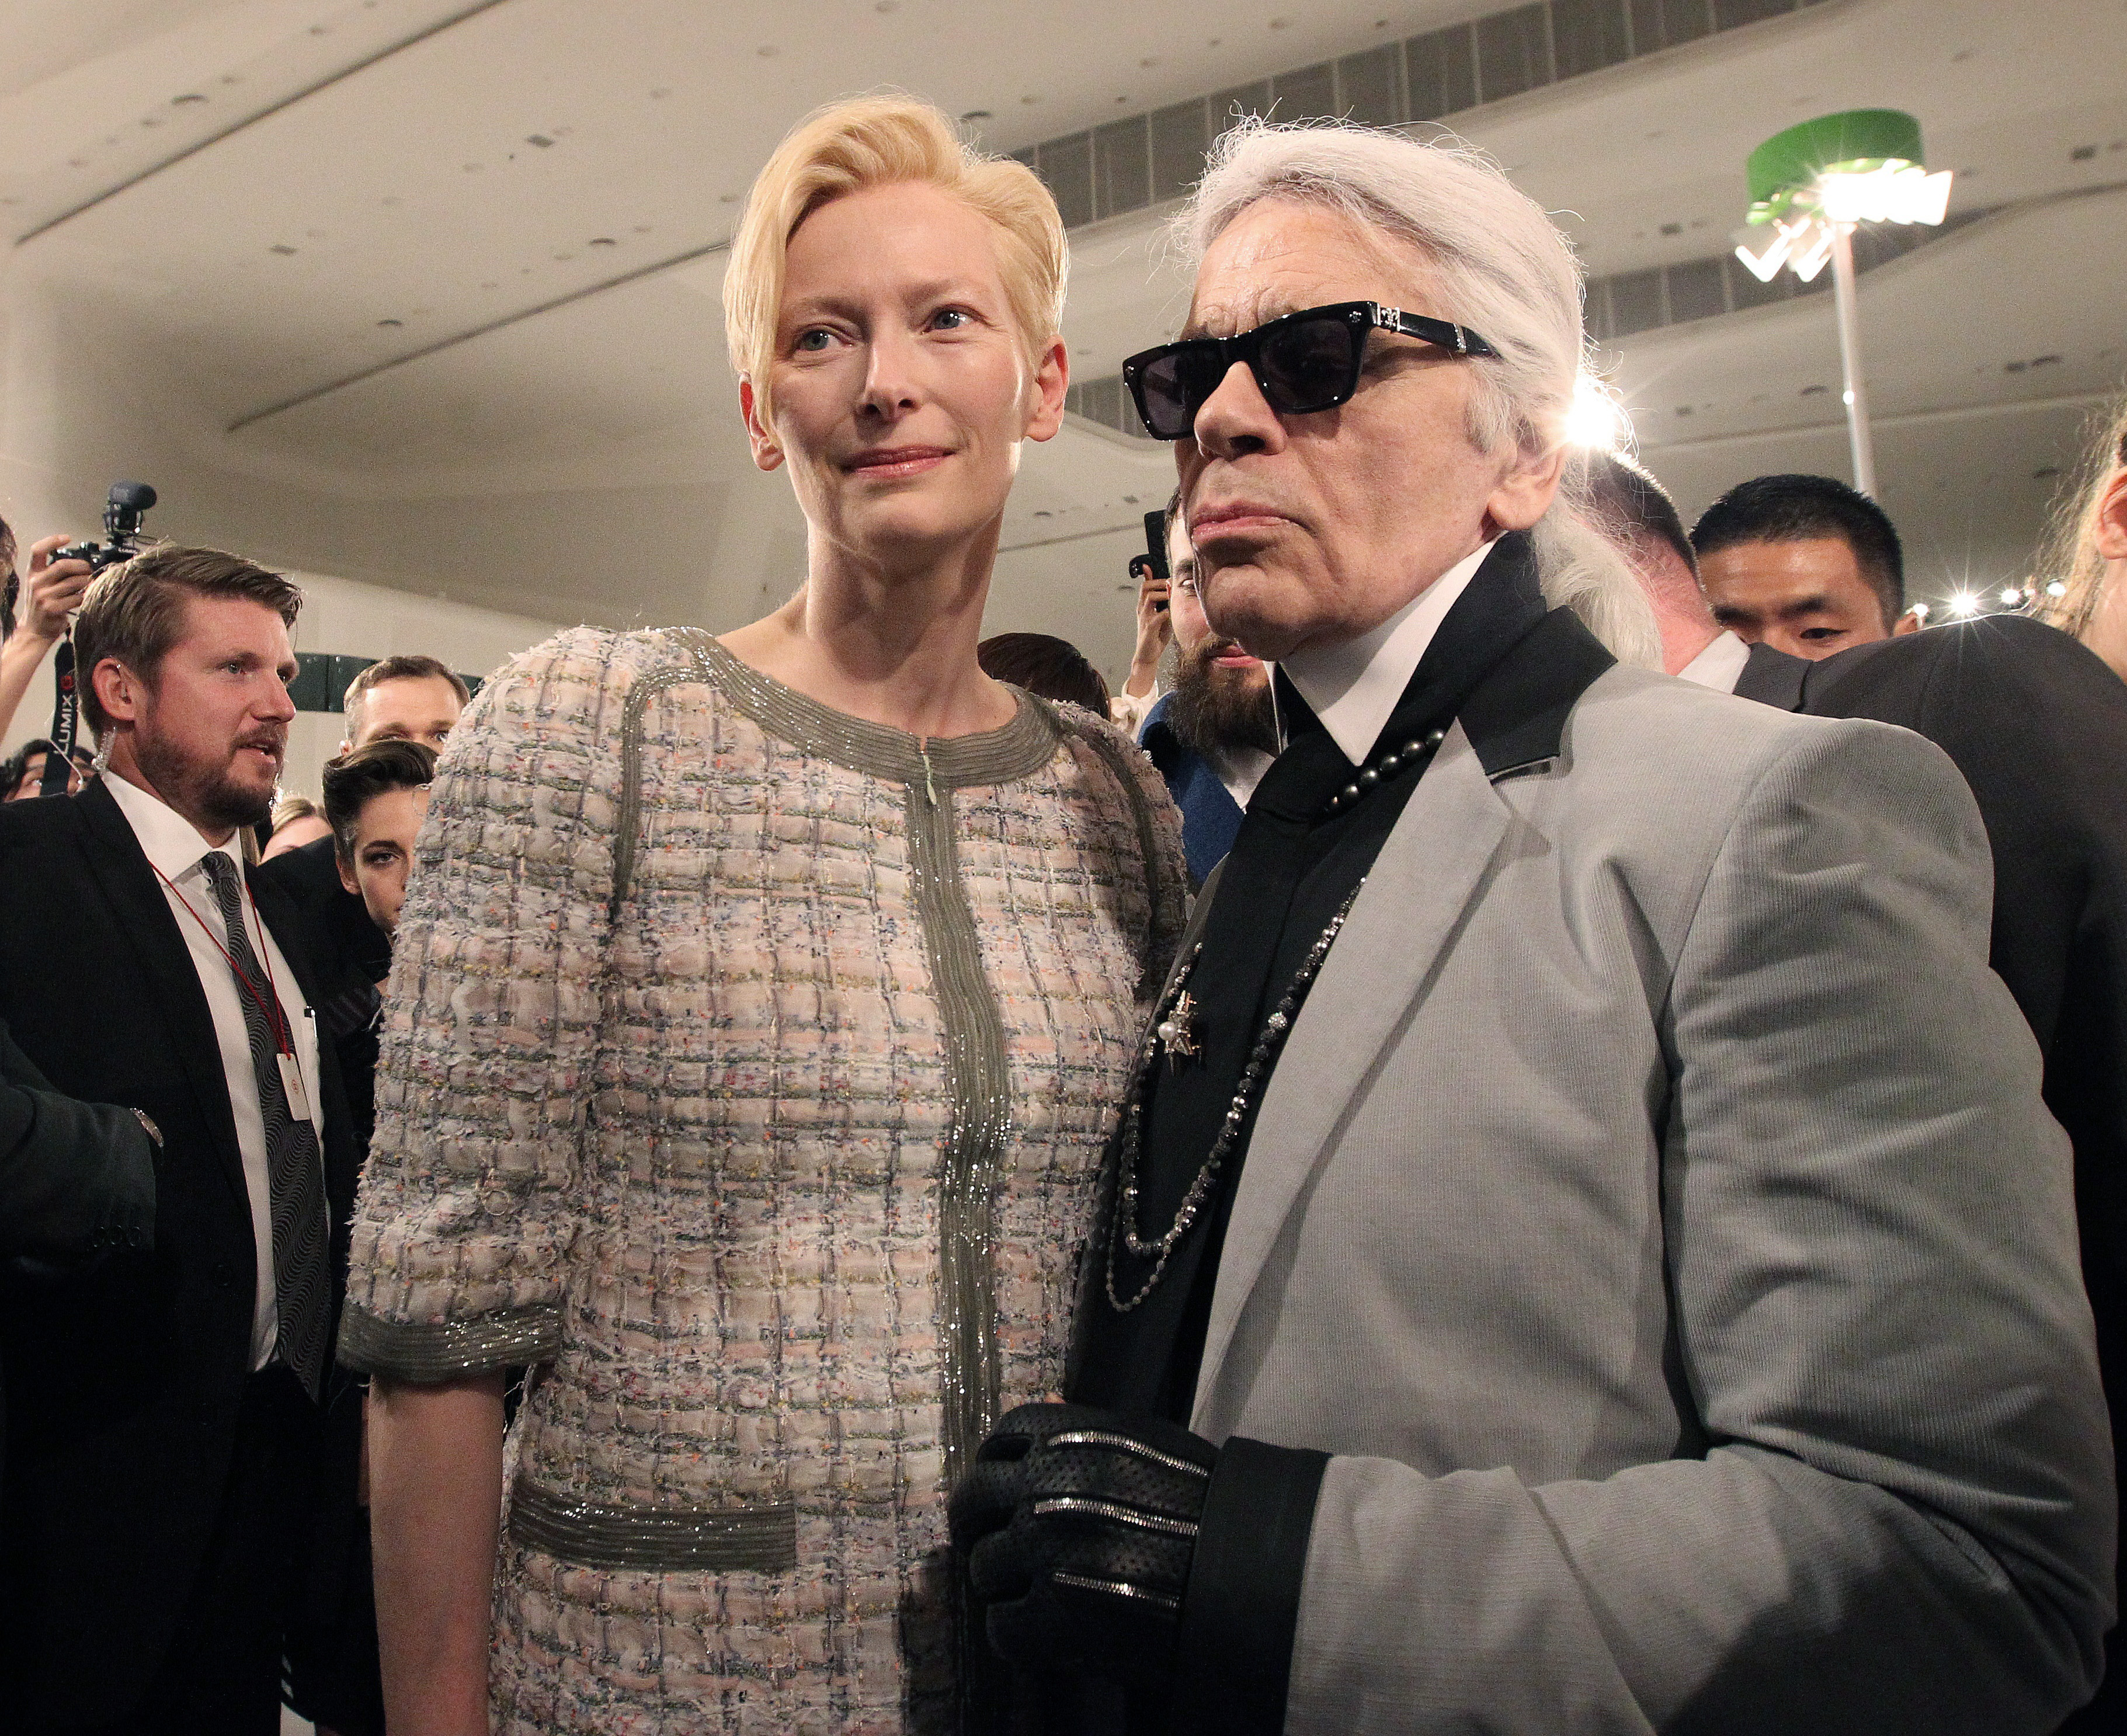 German fashion designer Karl Lagerfeld, right, poses with British actress Tilda Swinton after the presentation of his 2015-2016 Chanel cruise collection at the Dongdaemun Design Plaza in Seoul, South Korea, Monday, May 4, 2015.